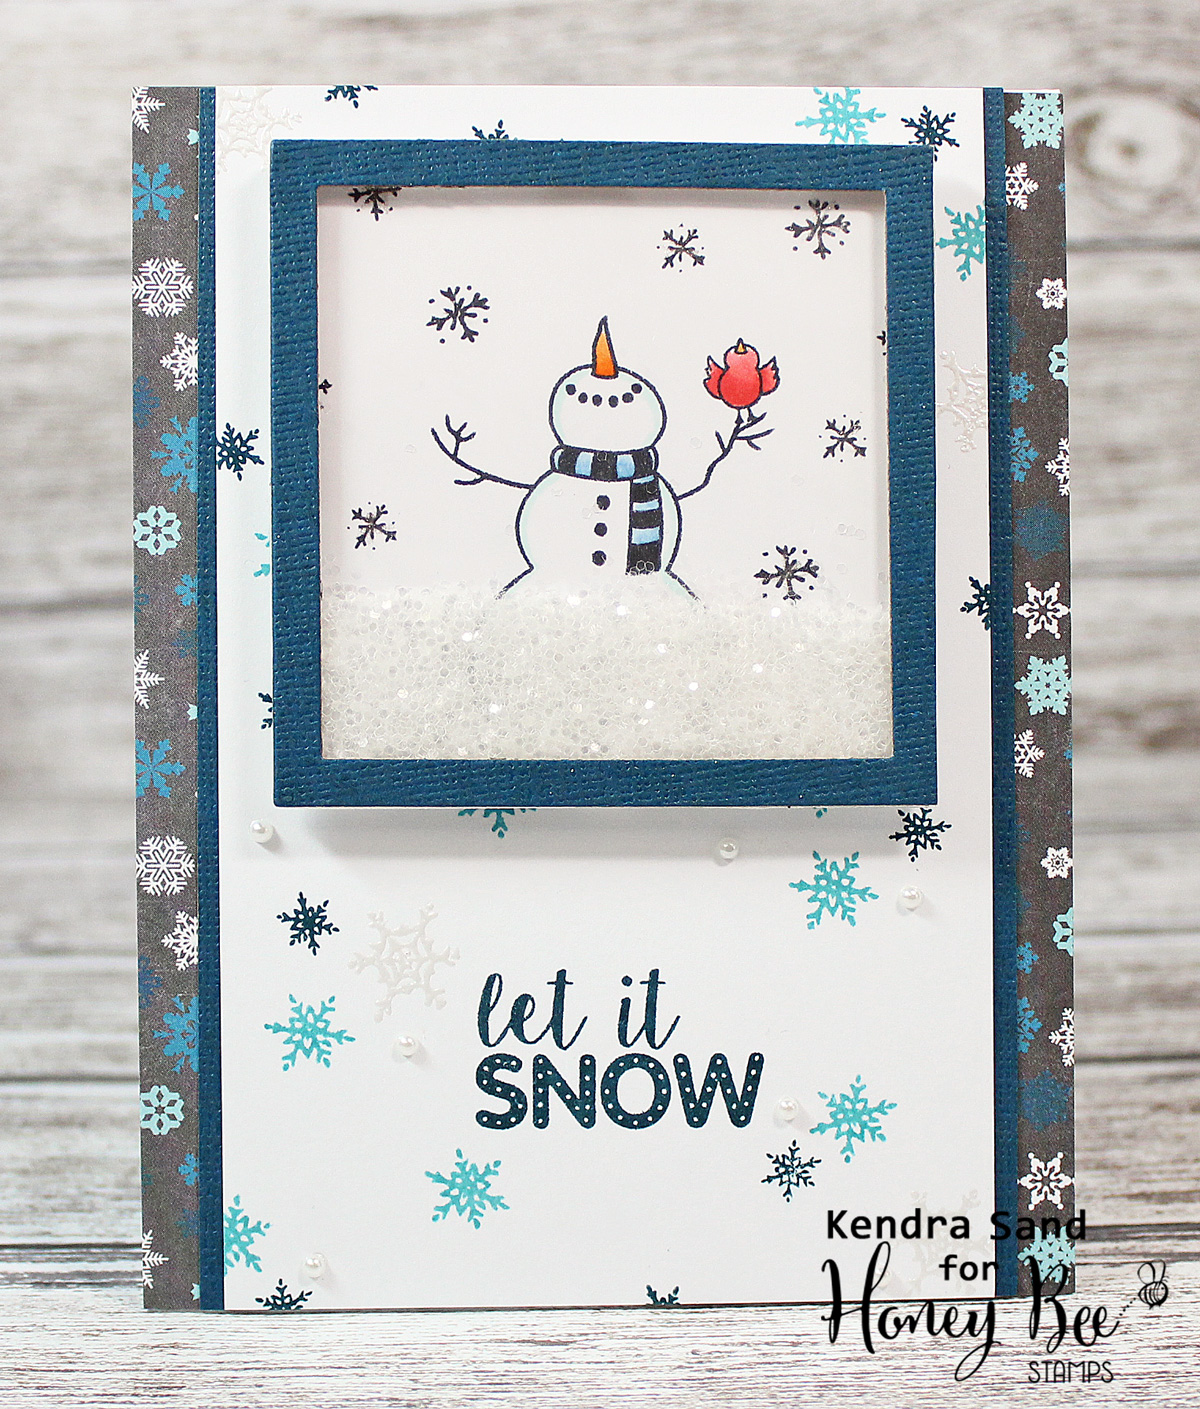 Luv 2 Scrap n' Make Cards: Sweet Snowman with Honey Bee Stamps - photo#48